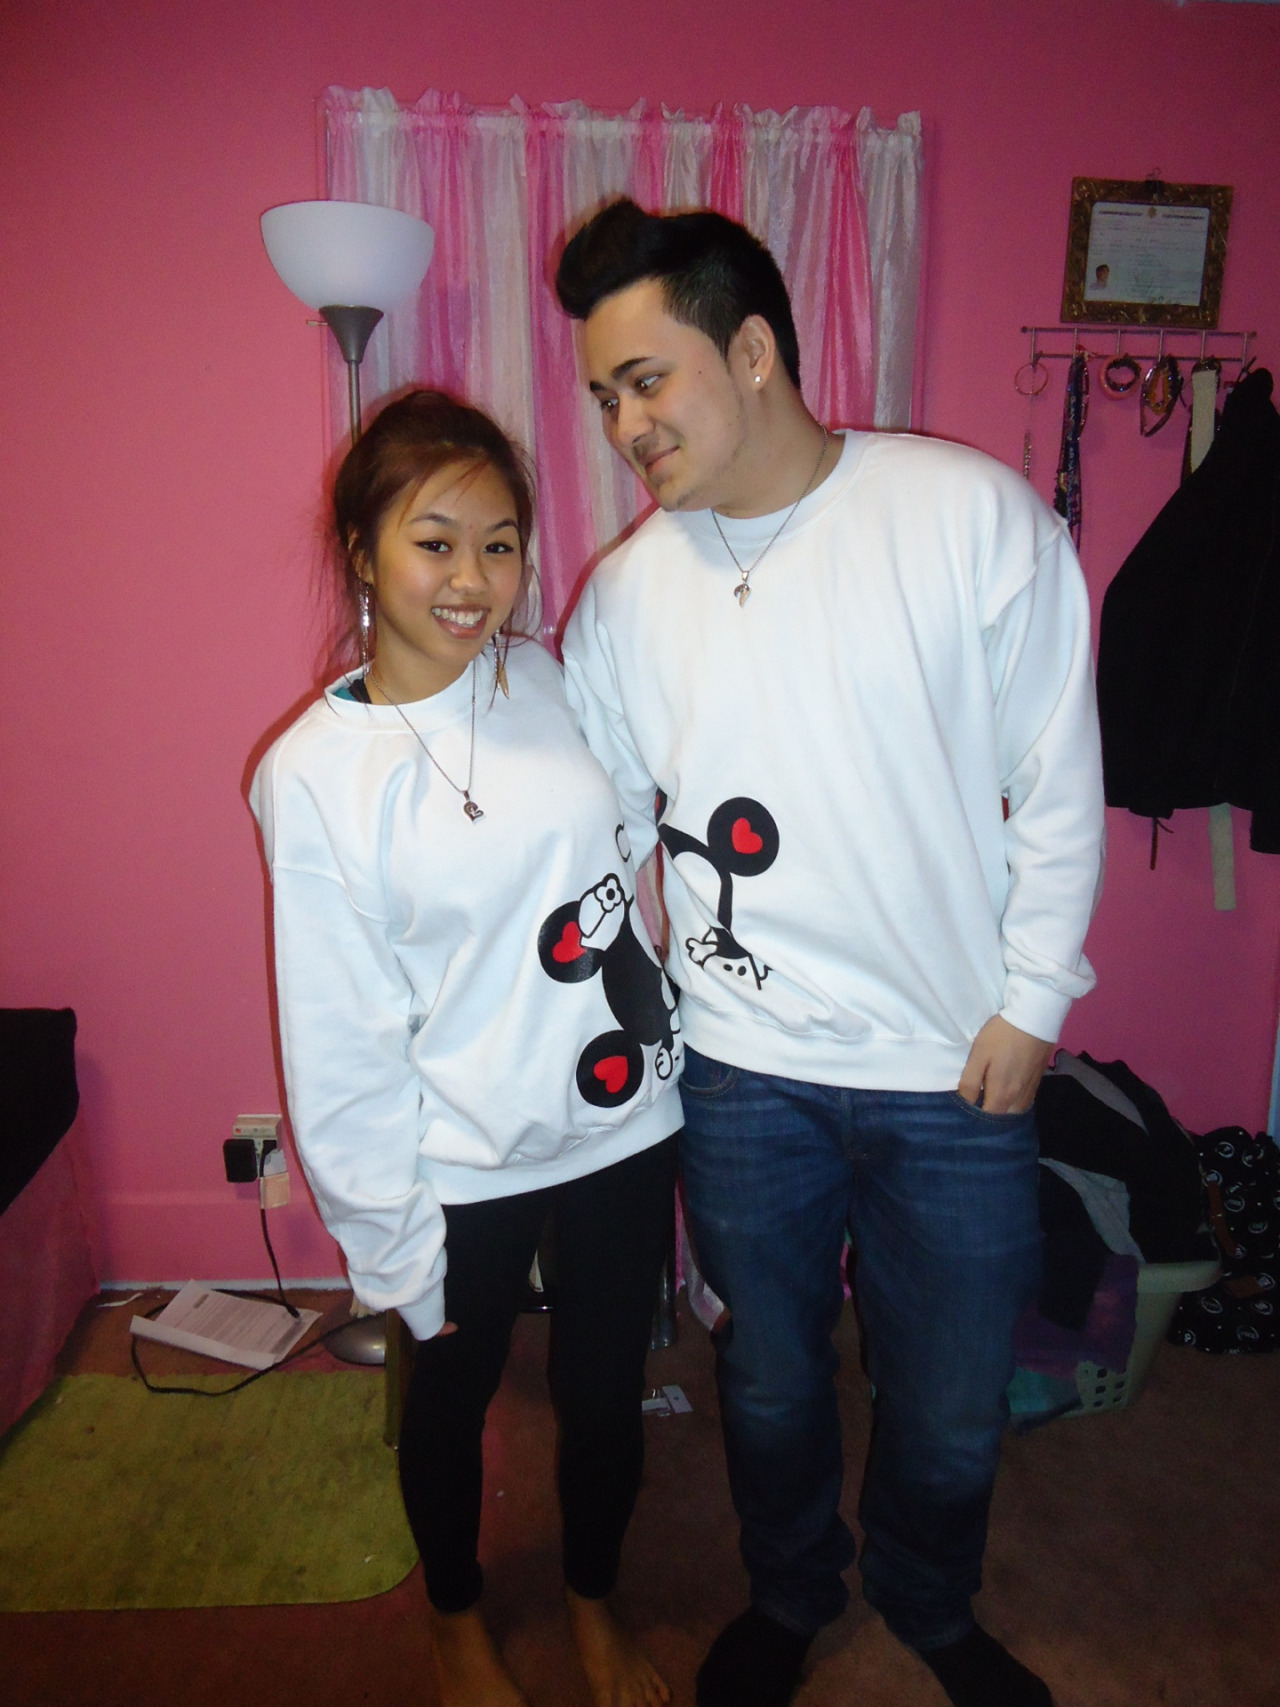 Mickey and Minnie Mouse Crewnecks from @happilyeverafterapparel (: